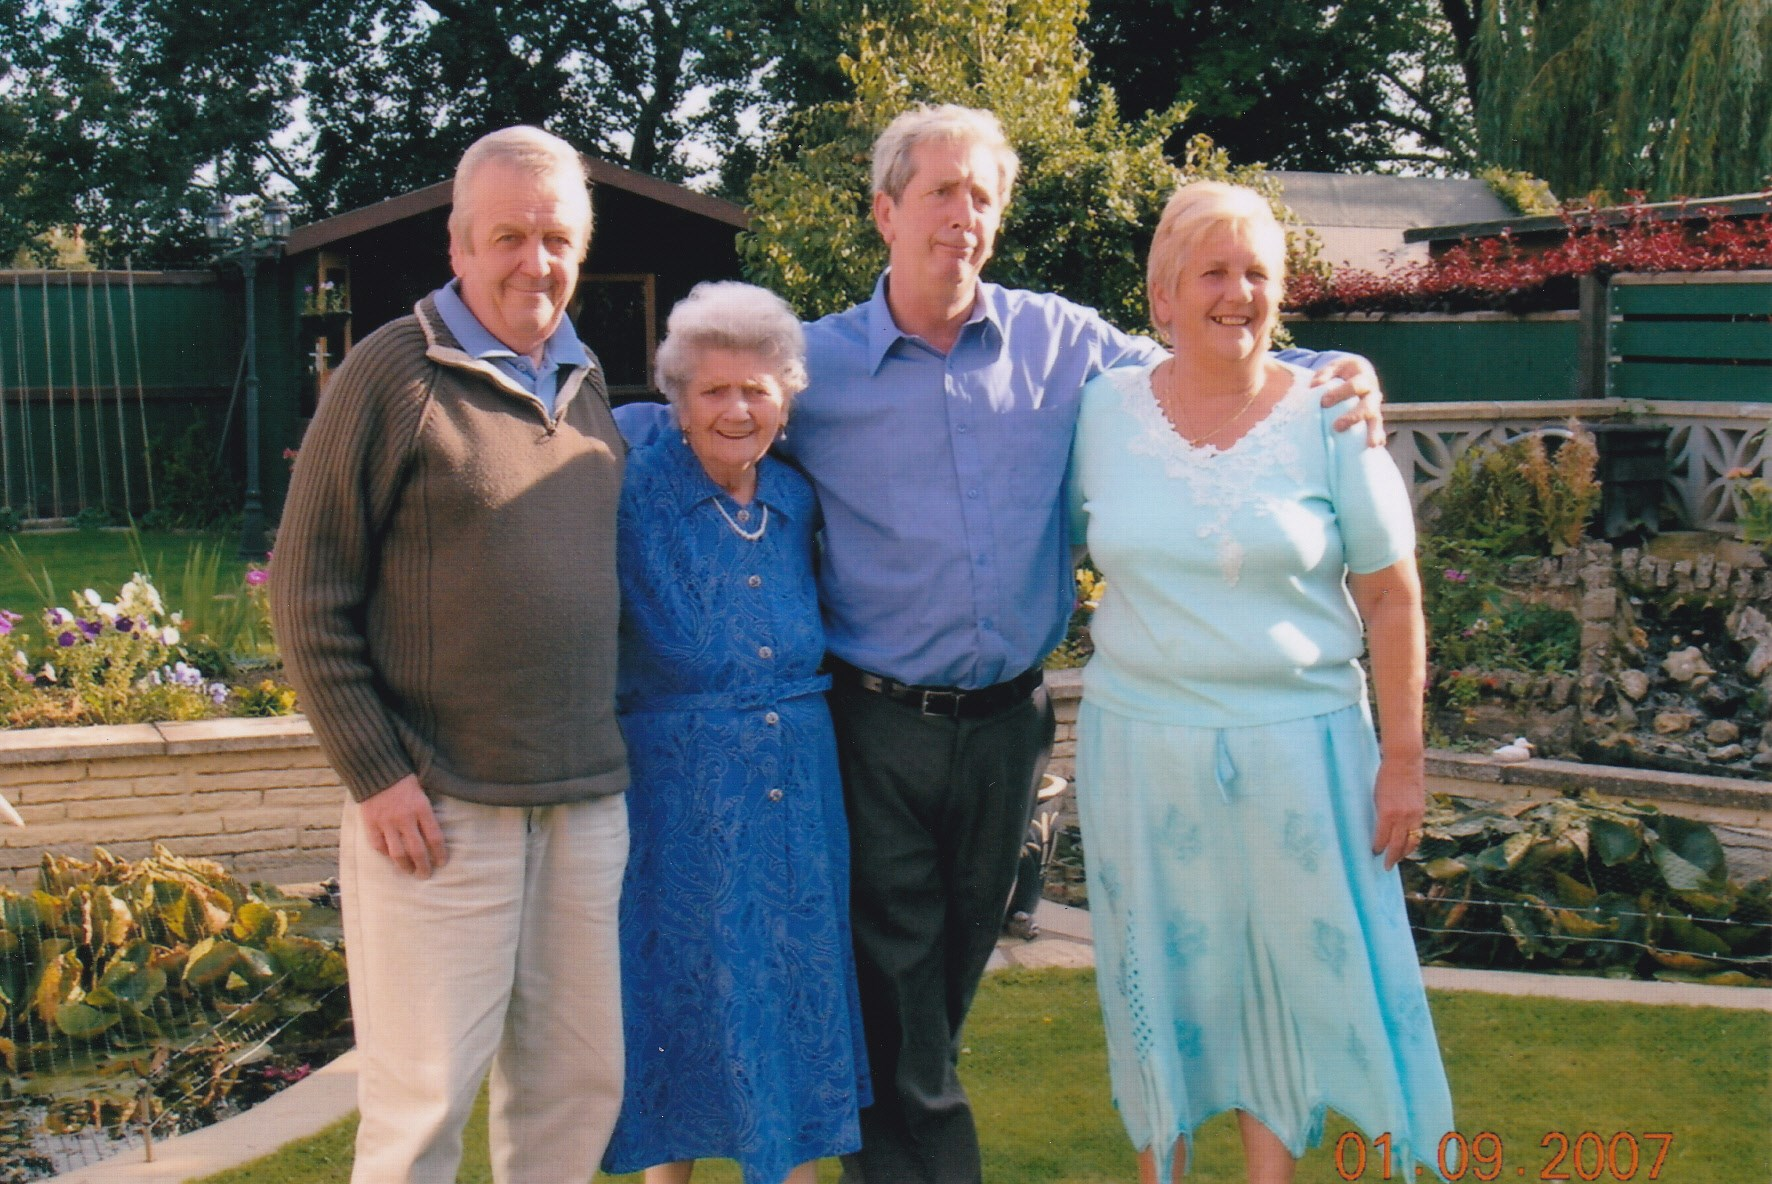 Colin with his Mum, Brother and Sister